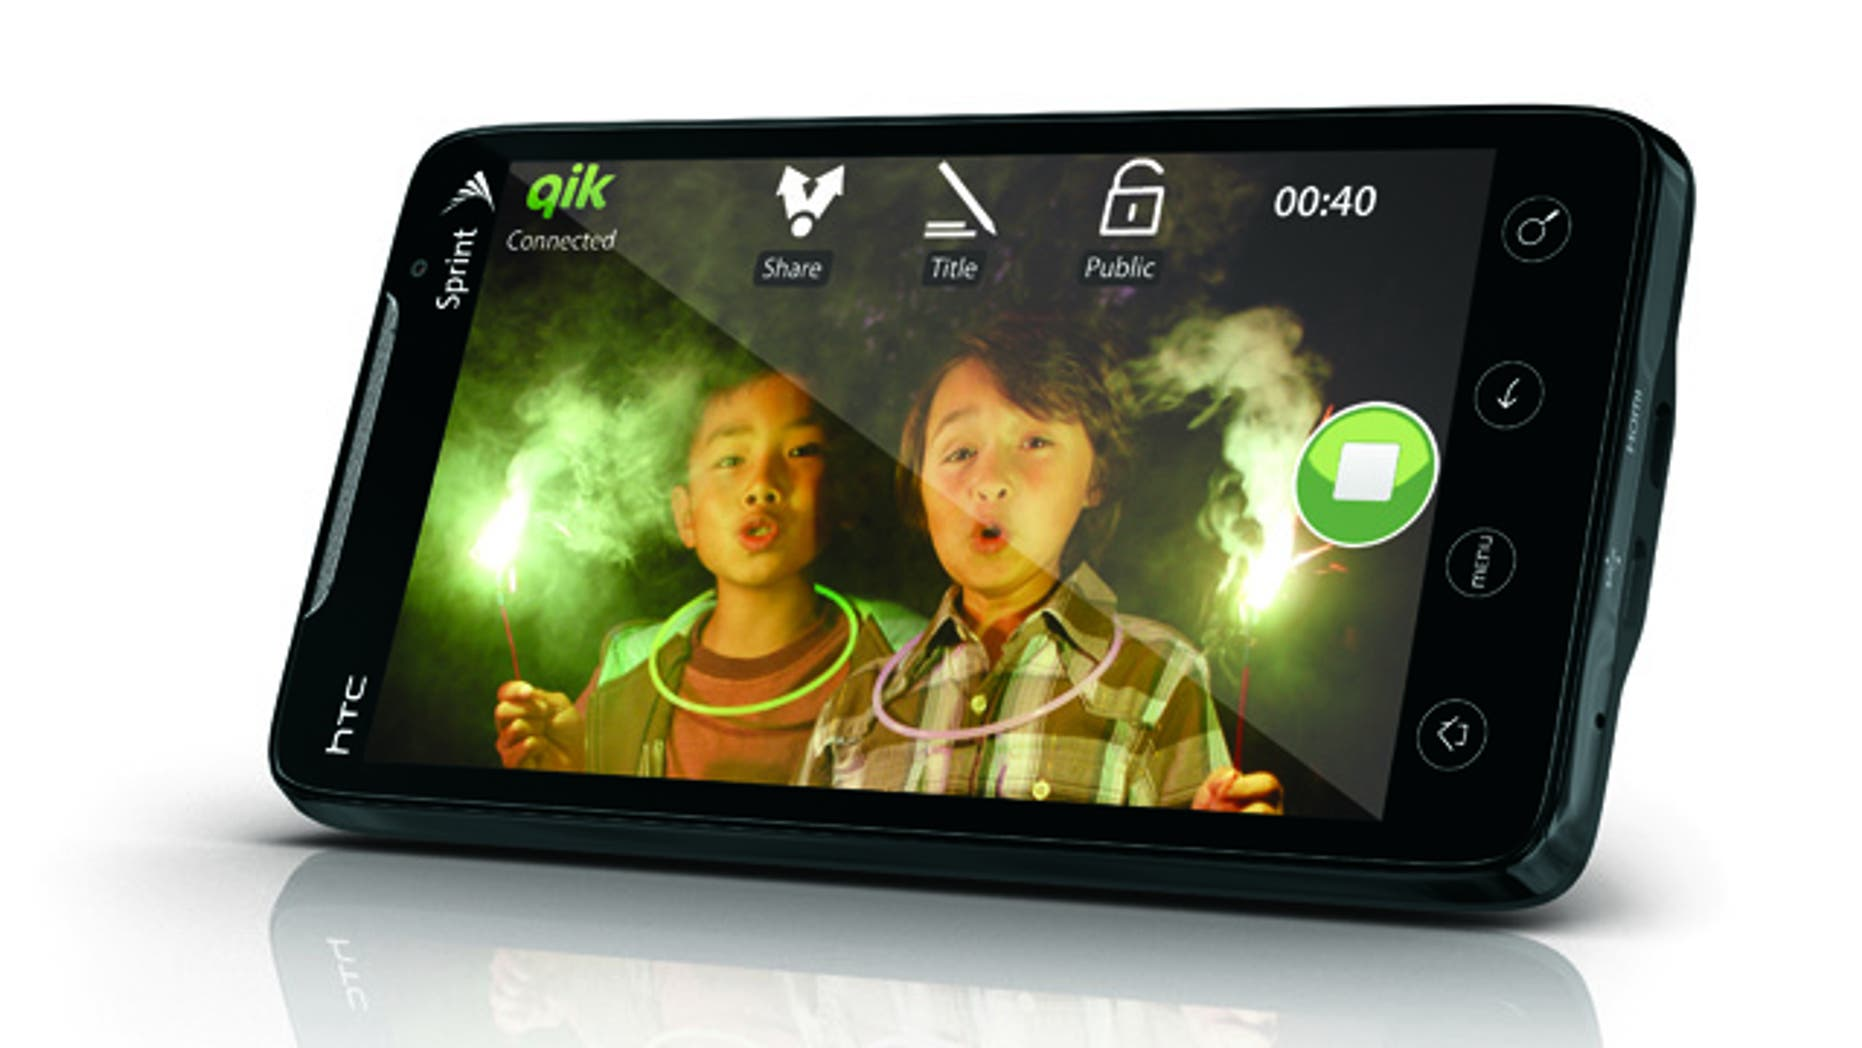 The HTC Evo 4G is the first smart phone made for Sprint's fourth-generation wireless network.